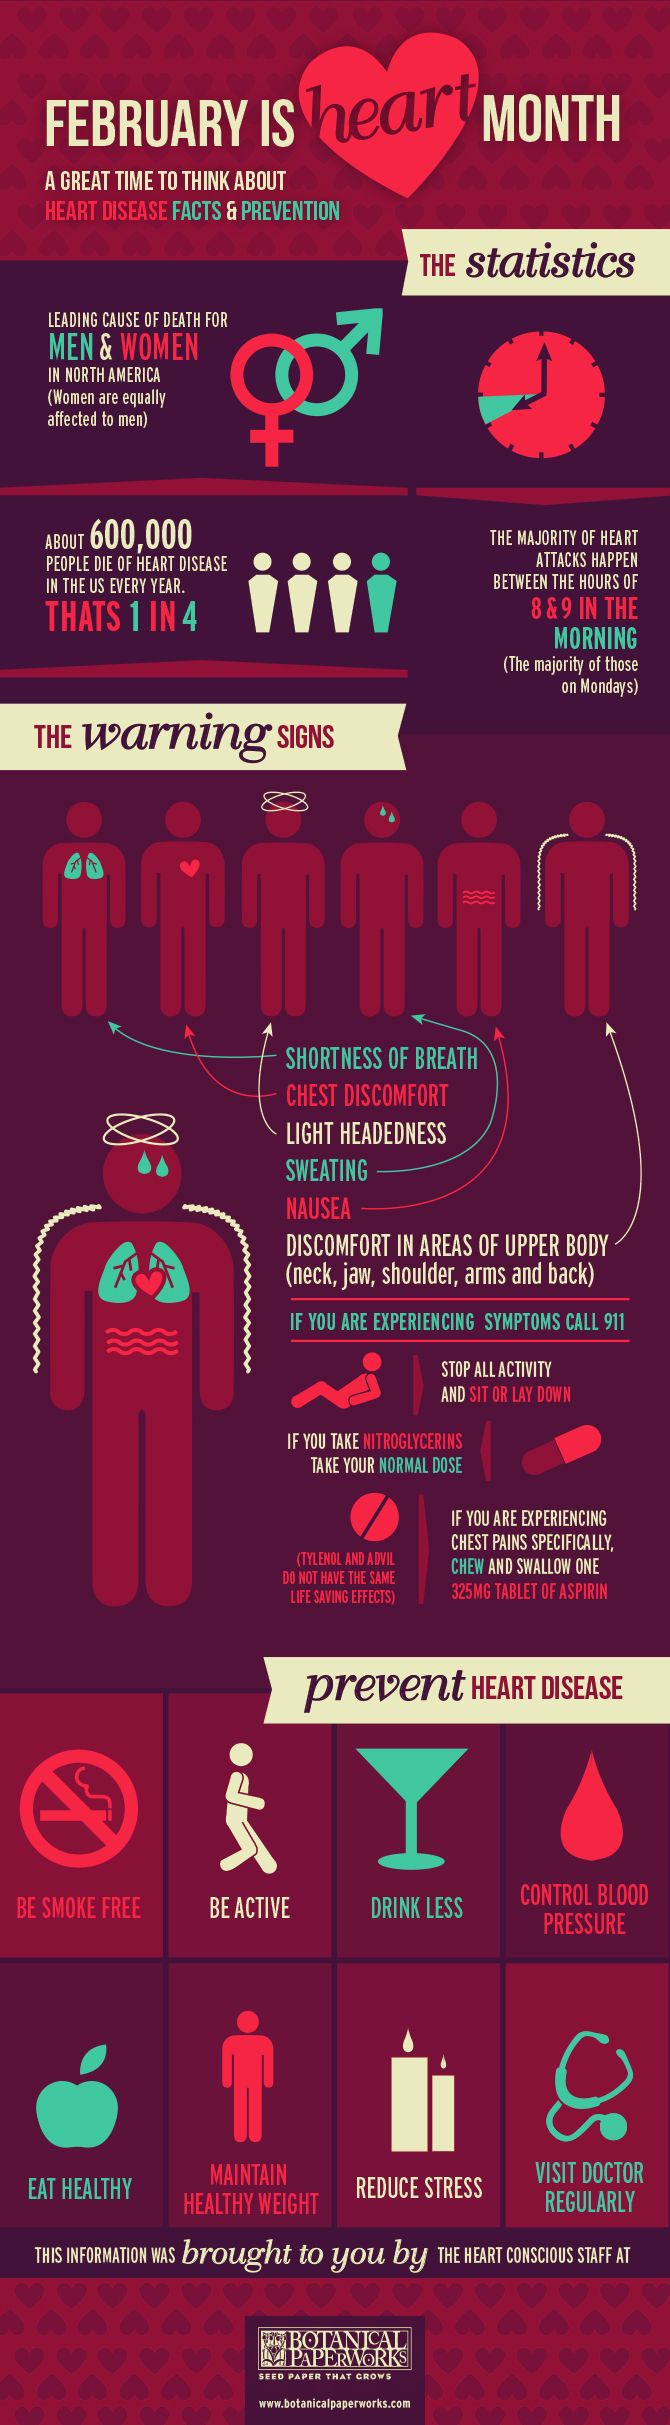 Heart Health Month Infographic from Botanical PaperWorks